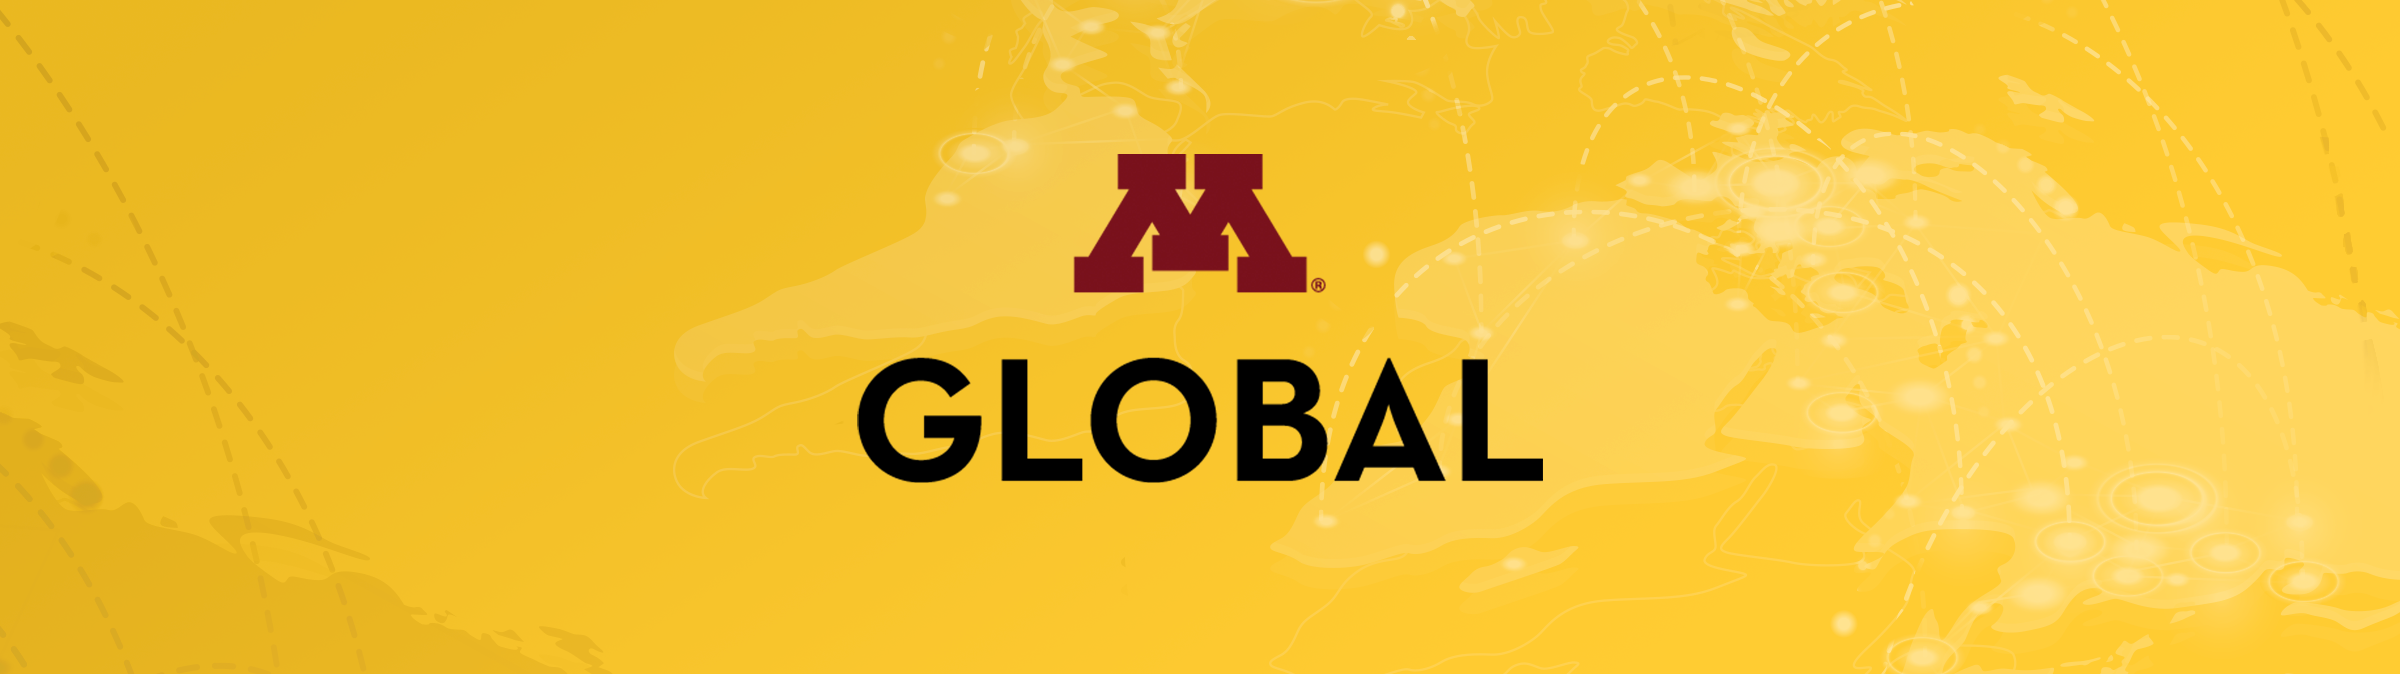 gold box with globe and country pattern and M Global logo with the maroon UMN block M and the nword global